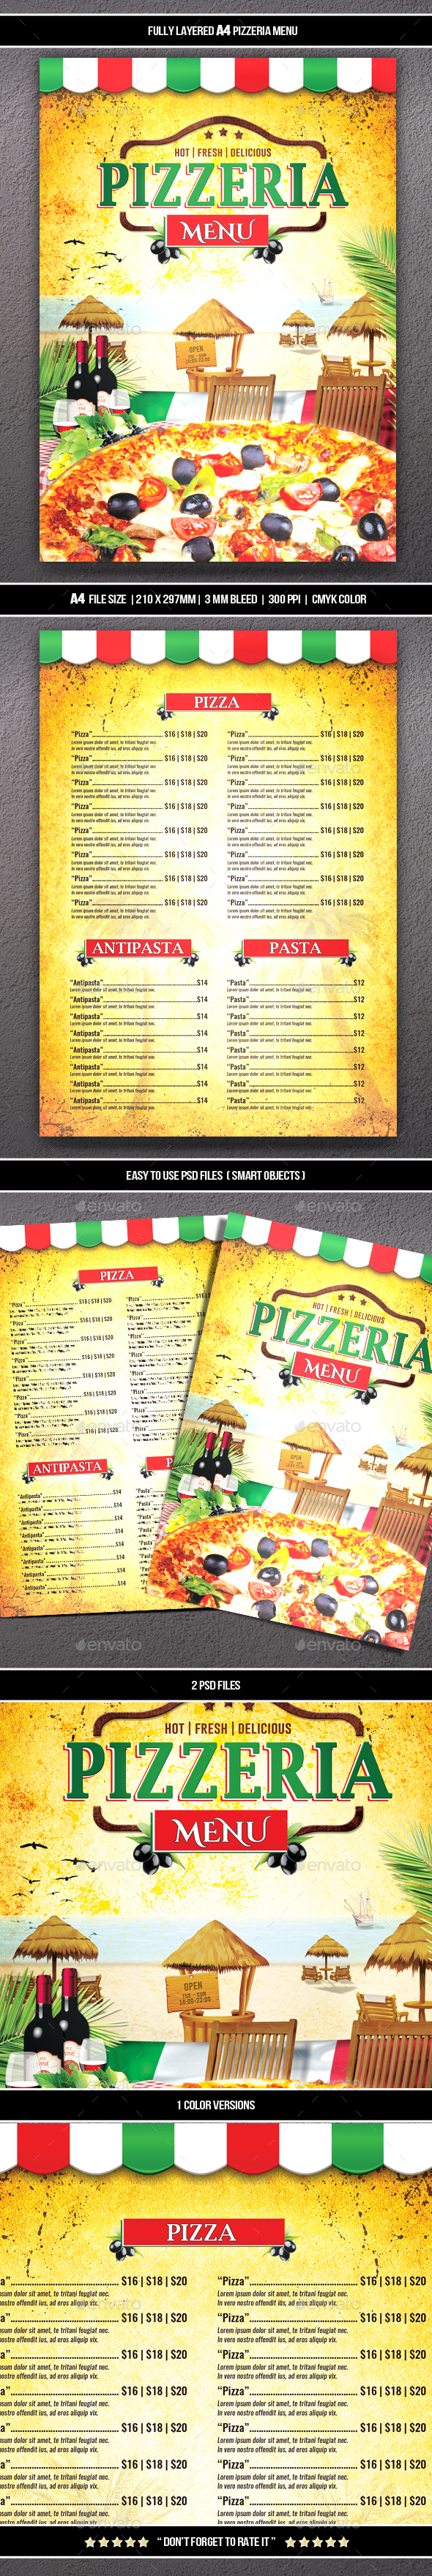 Pizzeria Menu 3 (A4) - Food Menus Print Templates